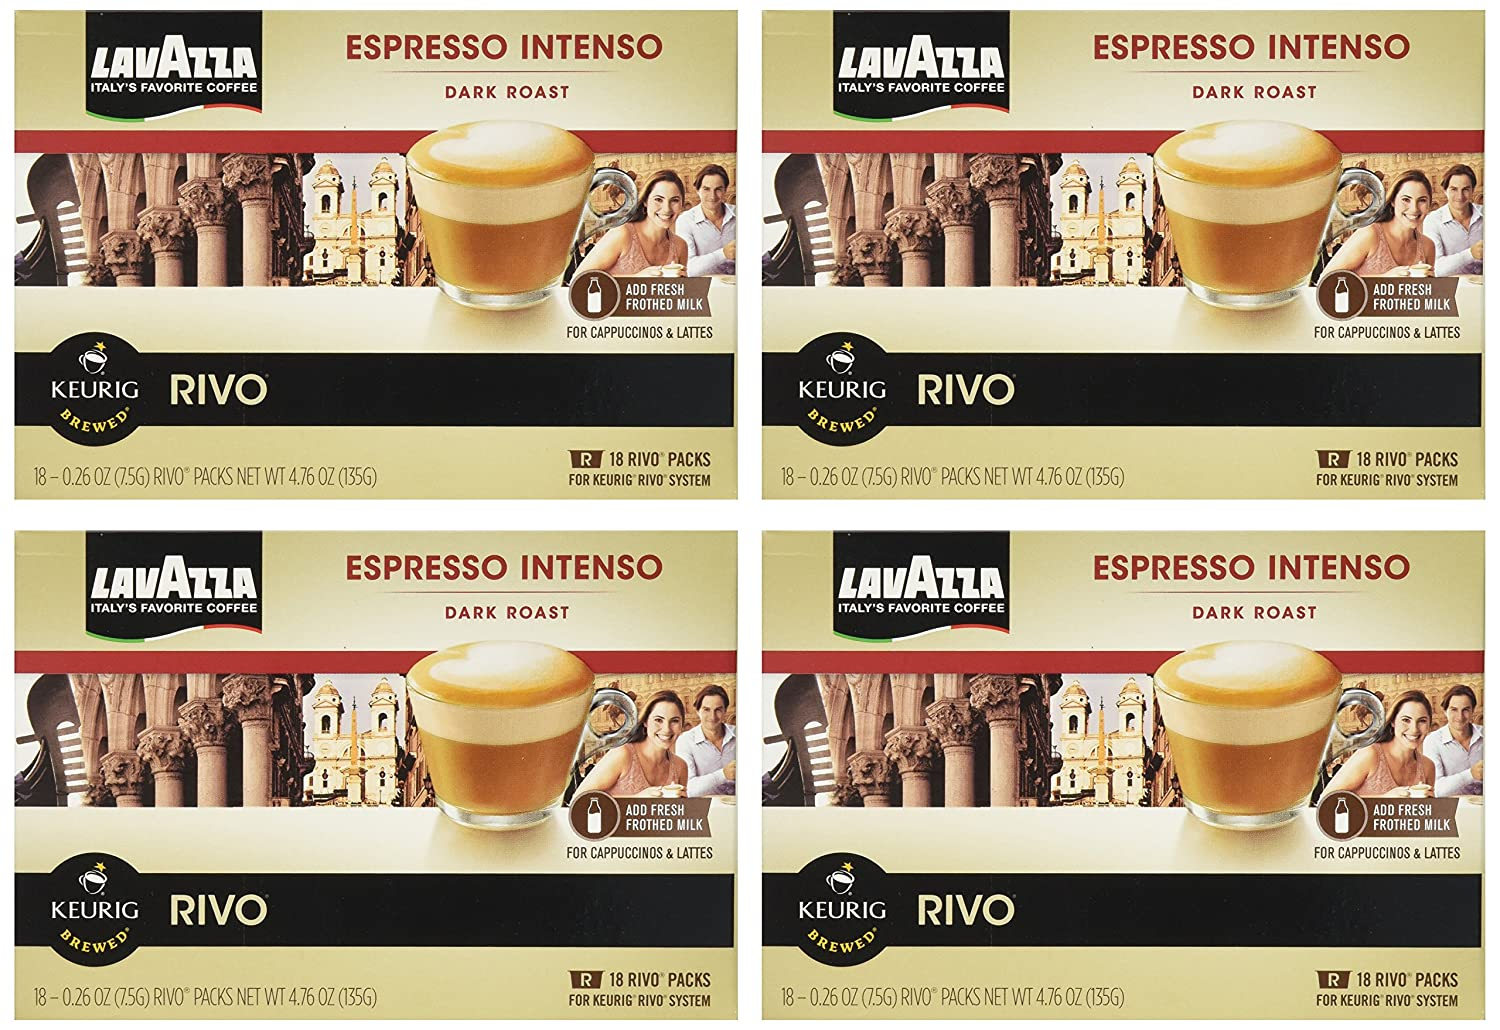 LAVAZZA ESPRESSO INTENSO 72 PACKS made for KEURIG RIVO SYSTEM